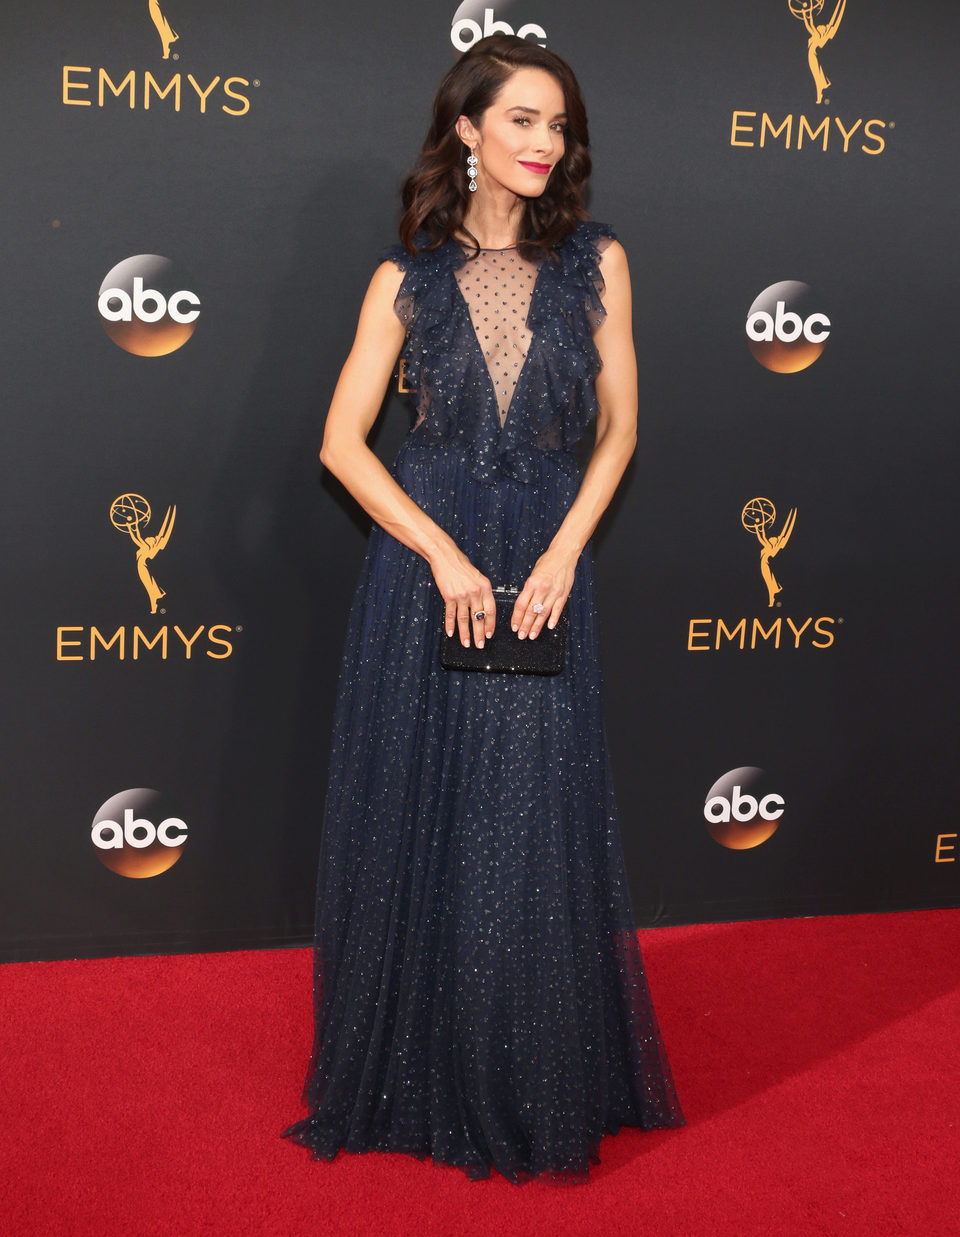 Abigail Spencer E-CARTELERA